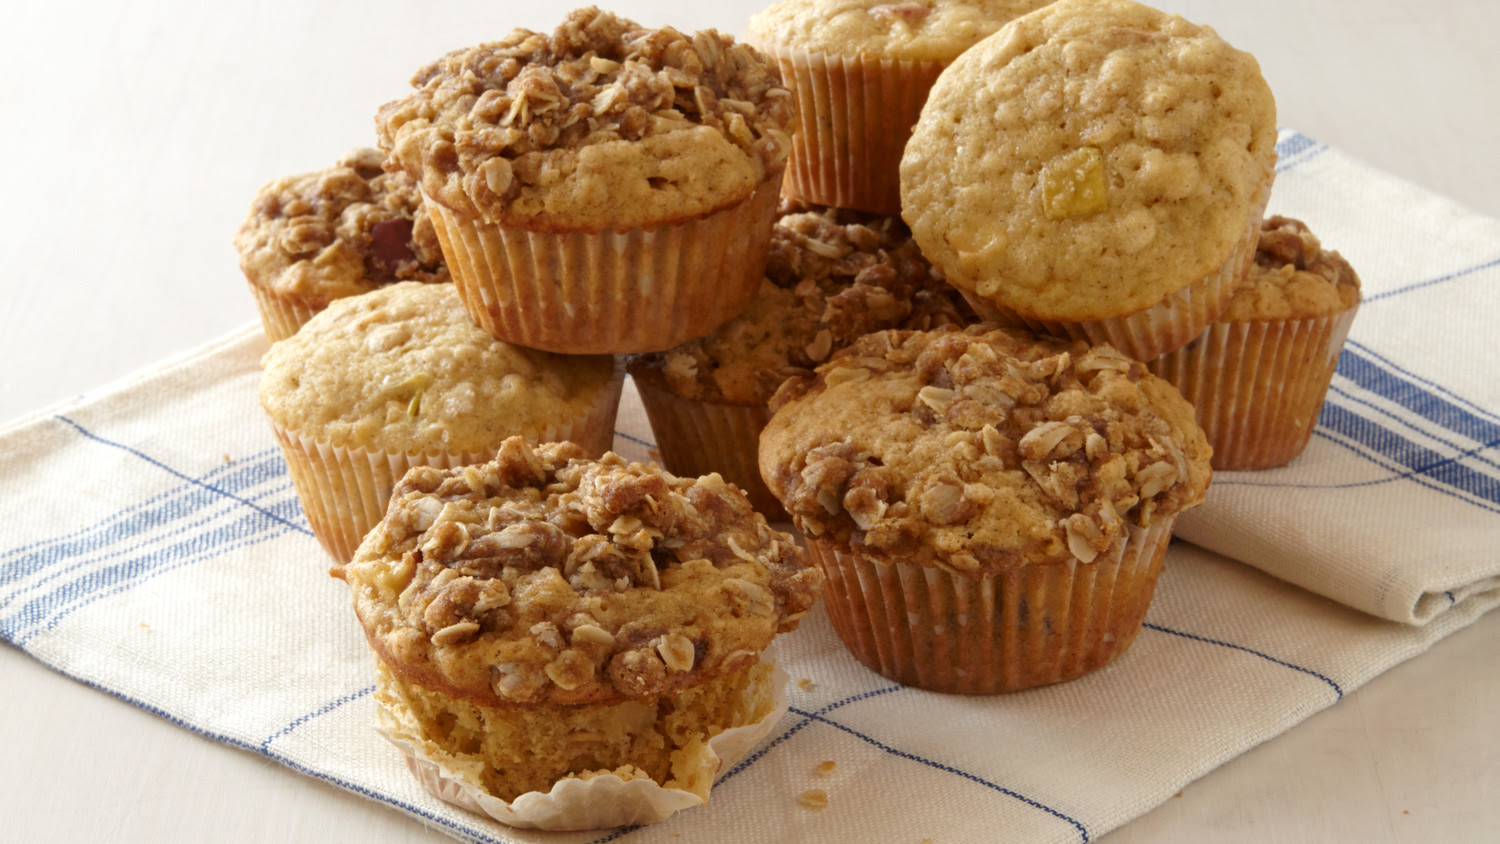 apple oat muffins 0091 d112215_horiz